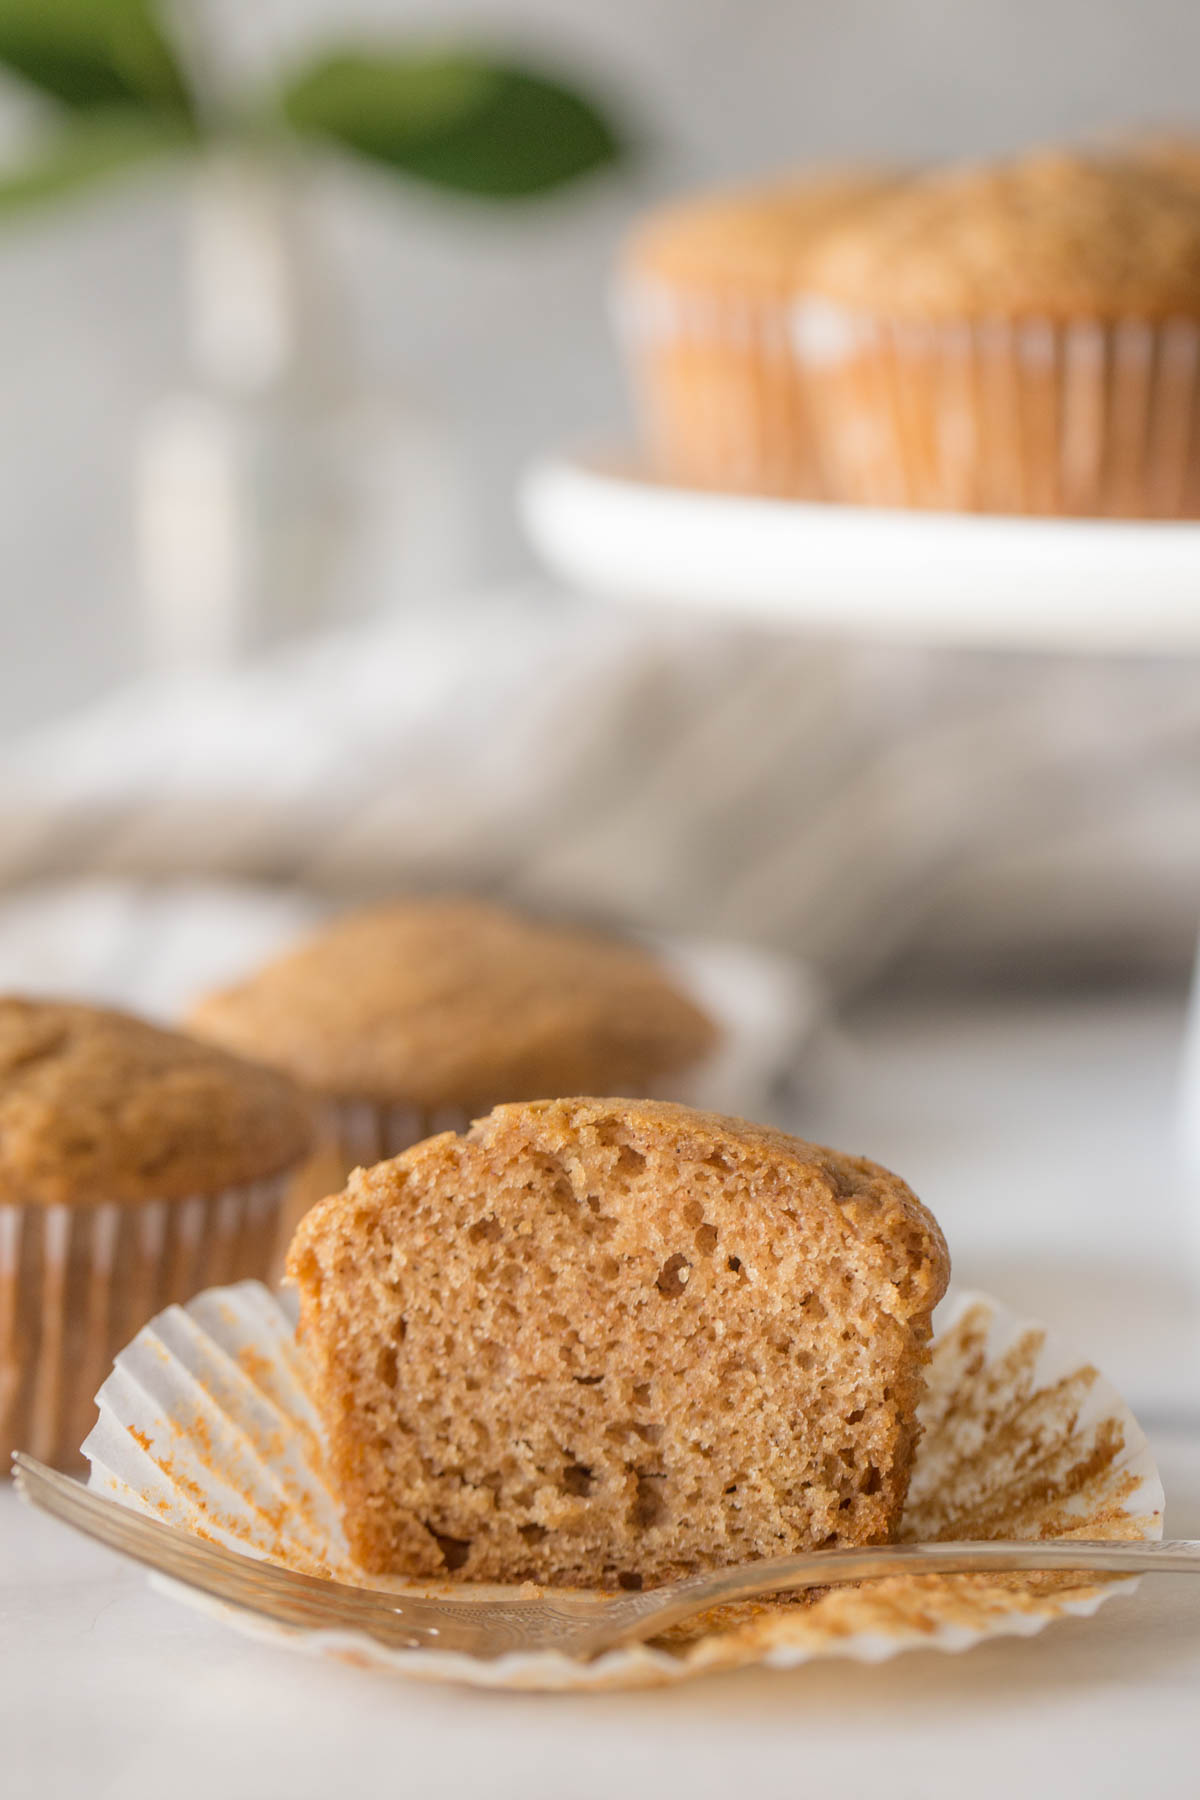 A close up view of a halved Cinnamon Applesauce Muffin on a white background.